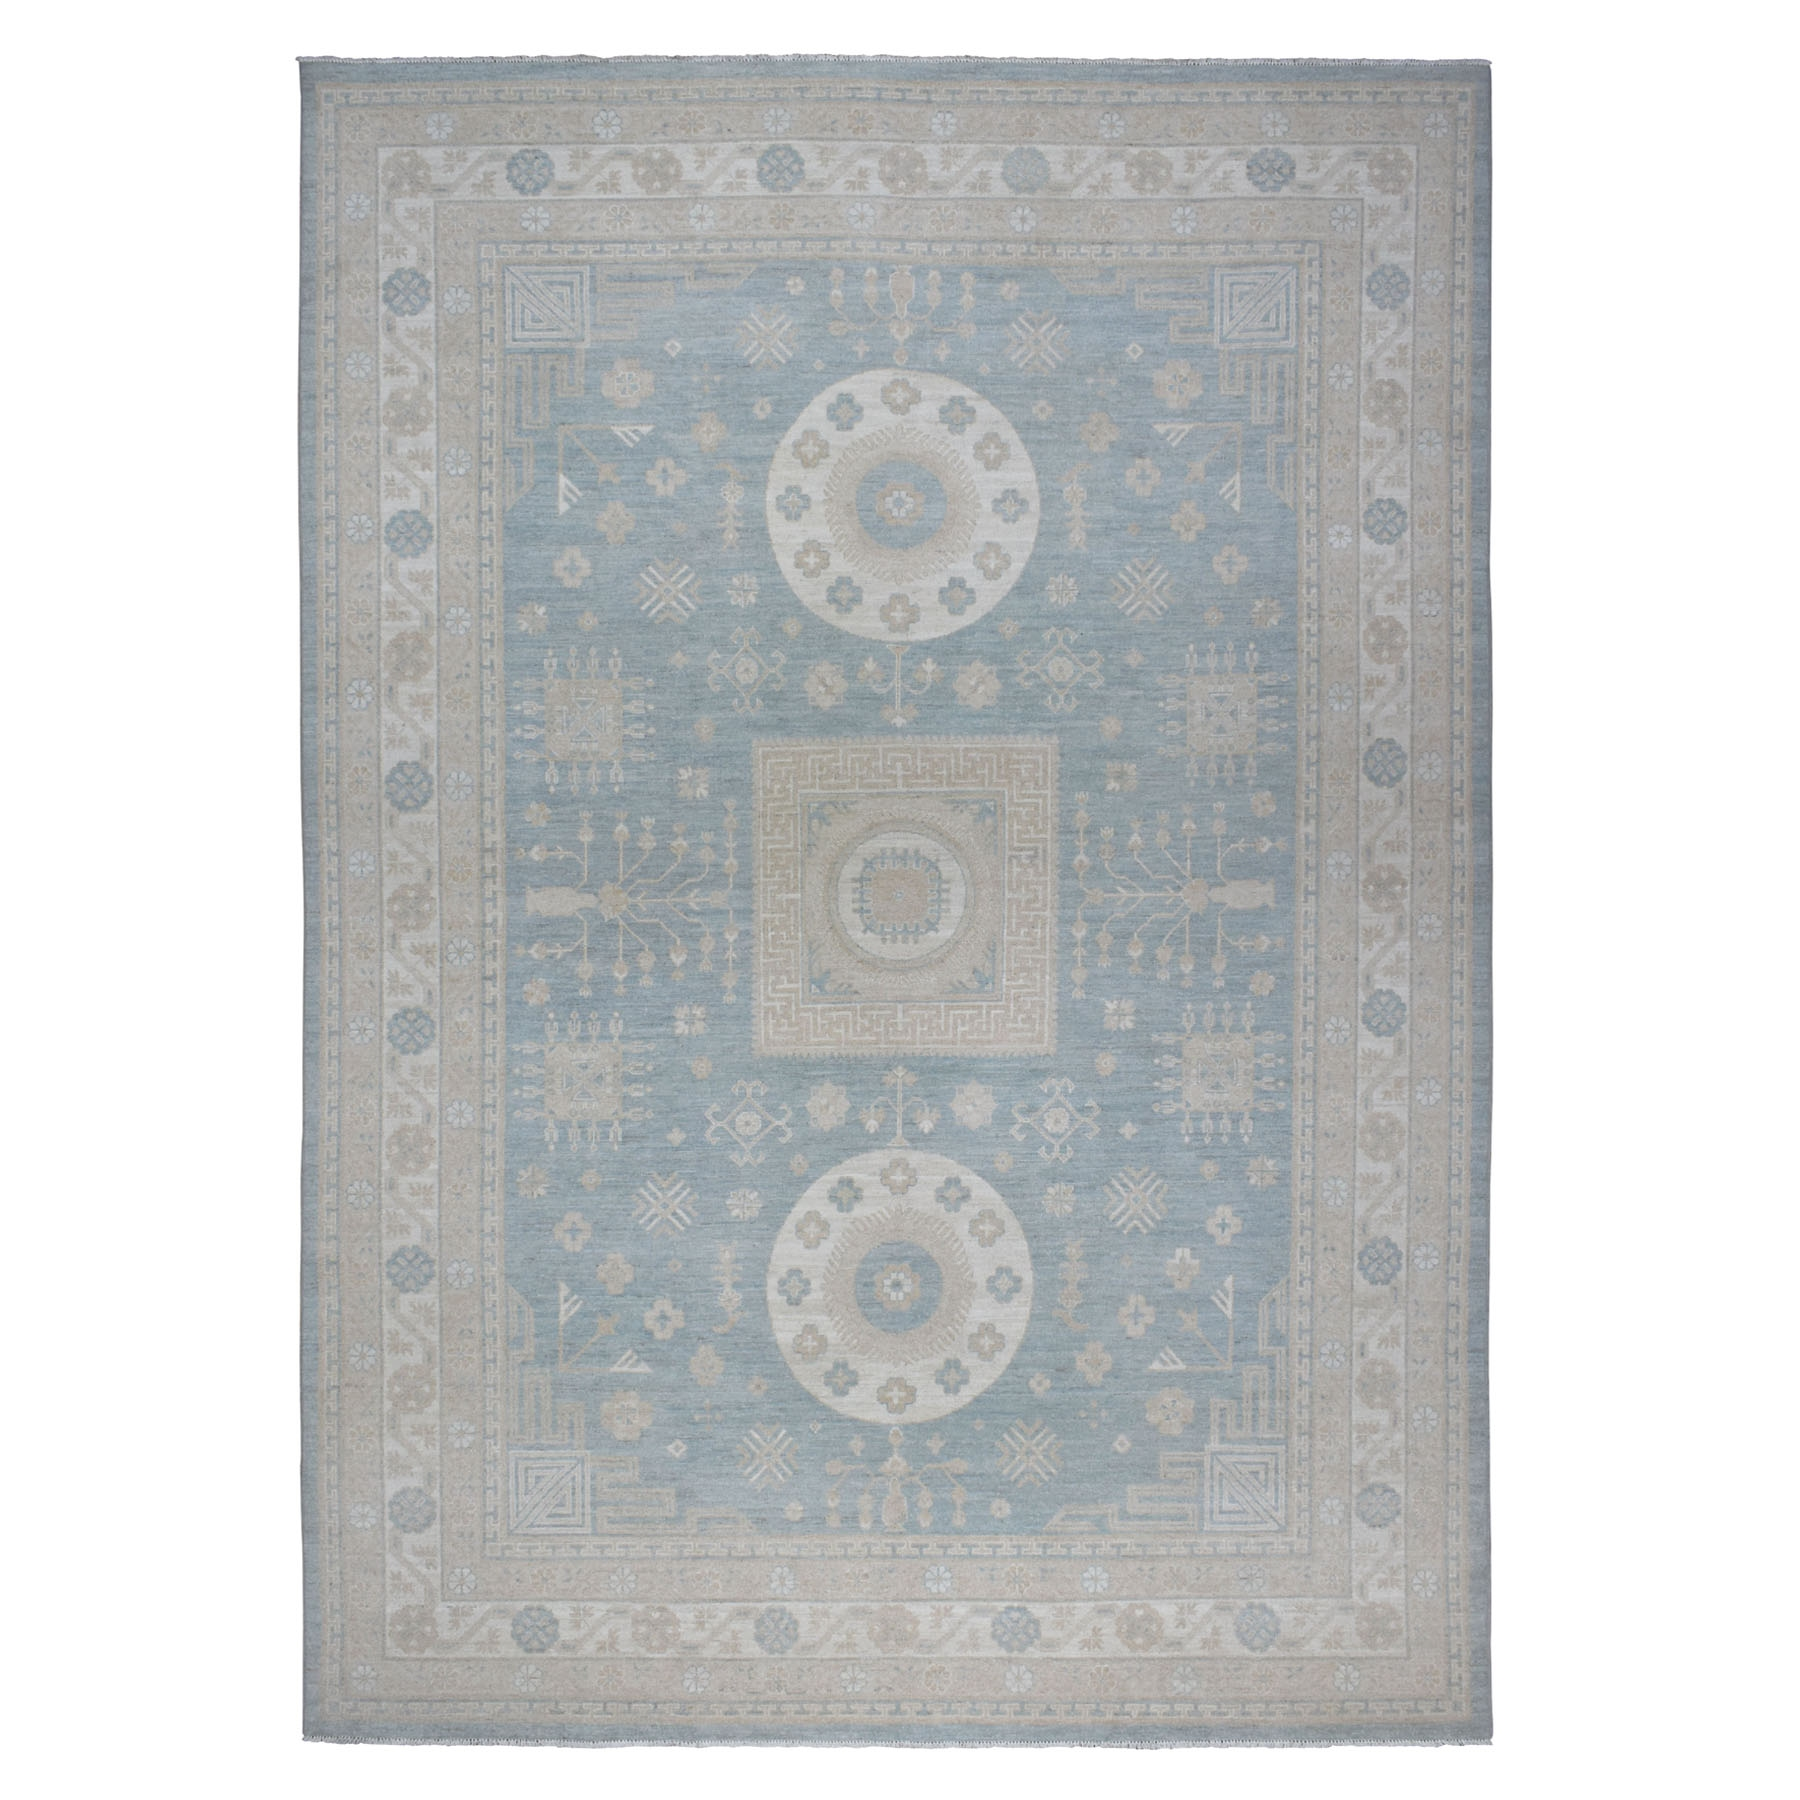 "10'x13'10"" Blue Peshawar with Khotan Design Pure Wool Hand Knotted Oriental Rug"